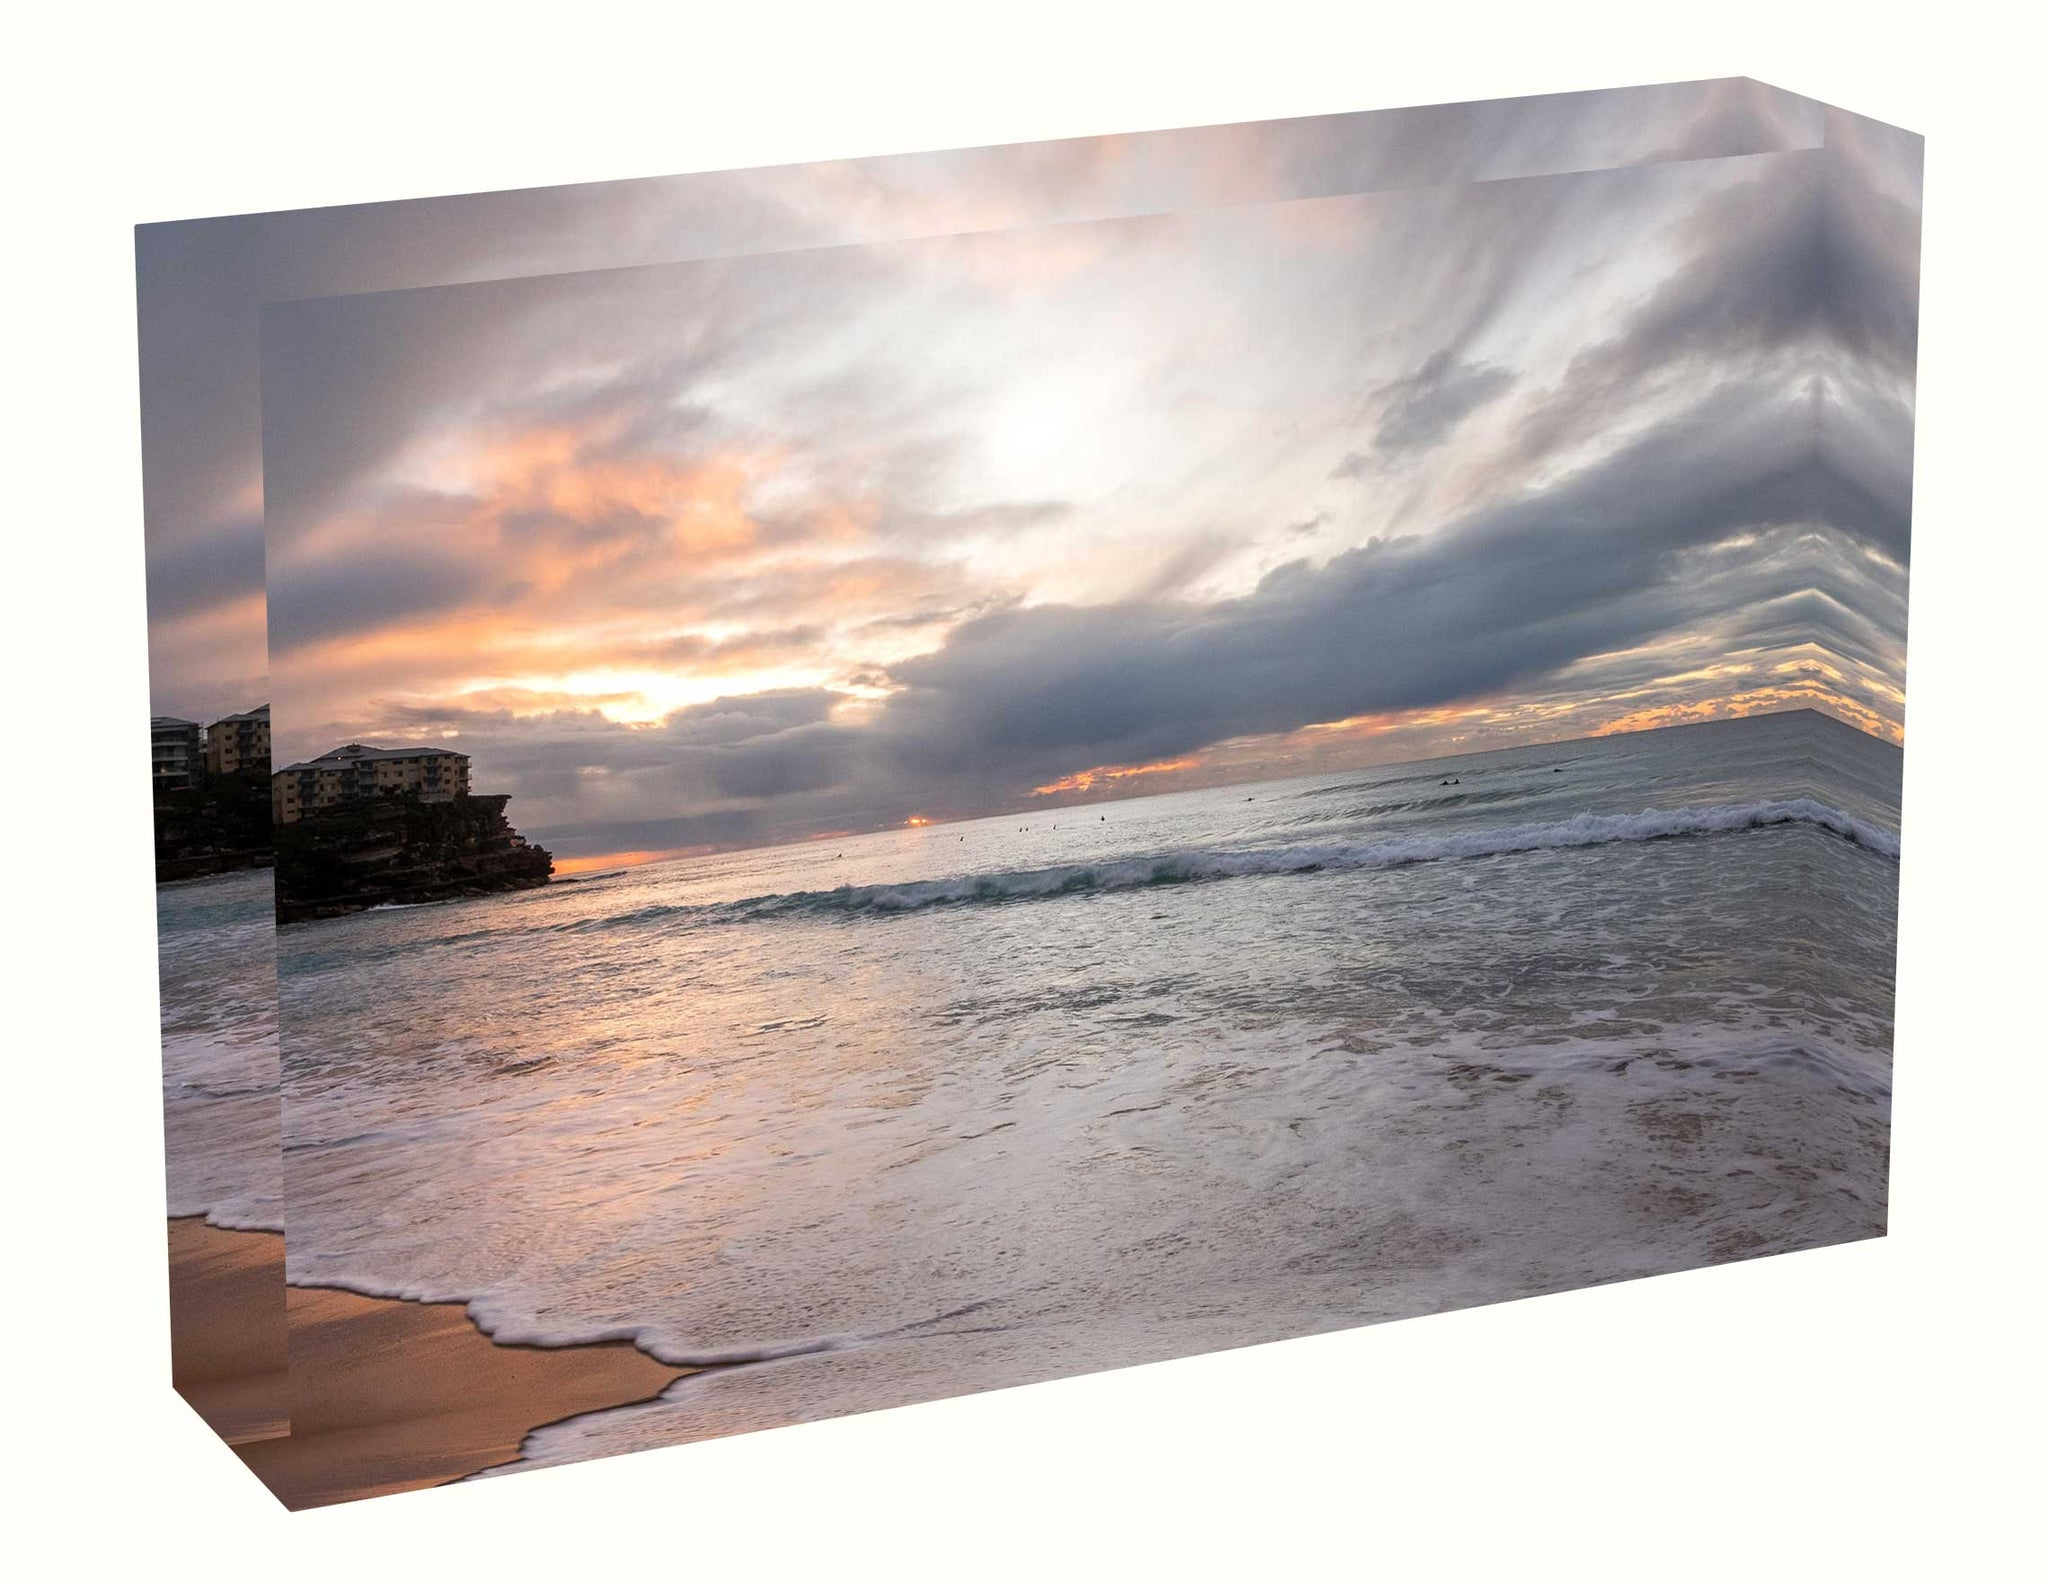 Acrylic block Birth Sunrise photo from the 22 June 2020 at Manly beach in Sydney